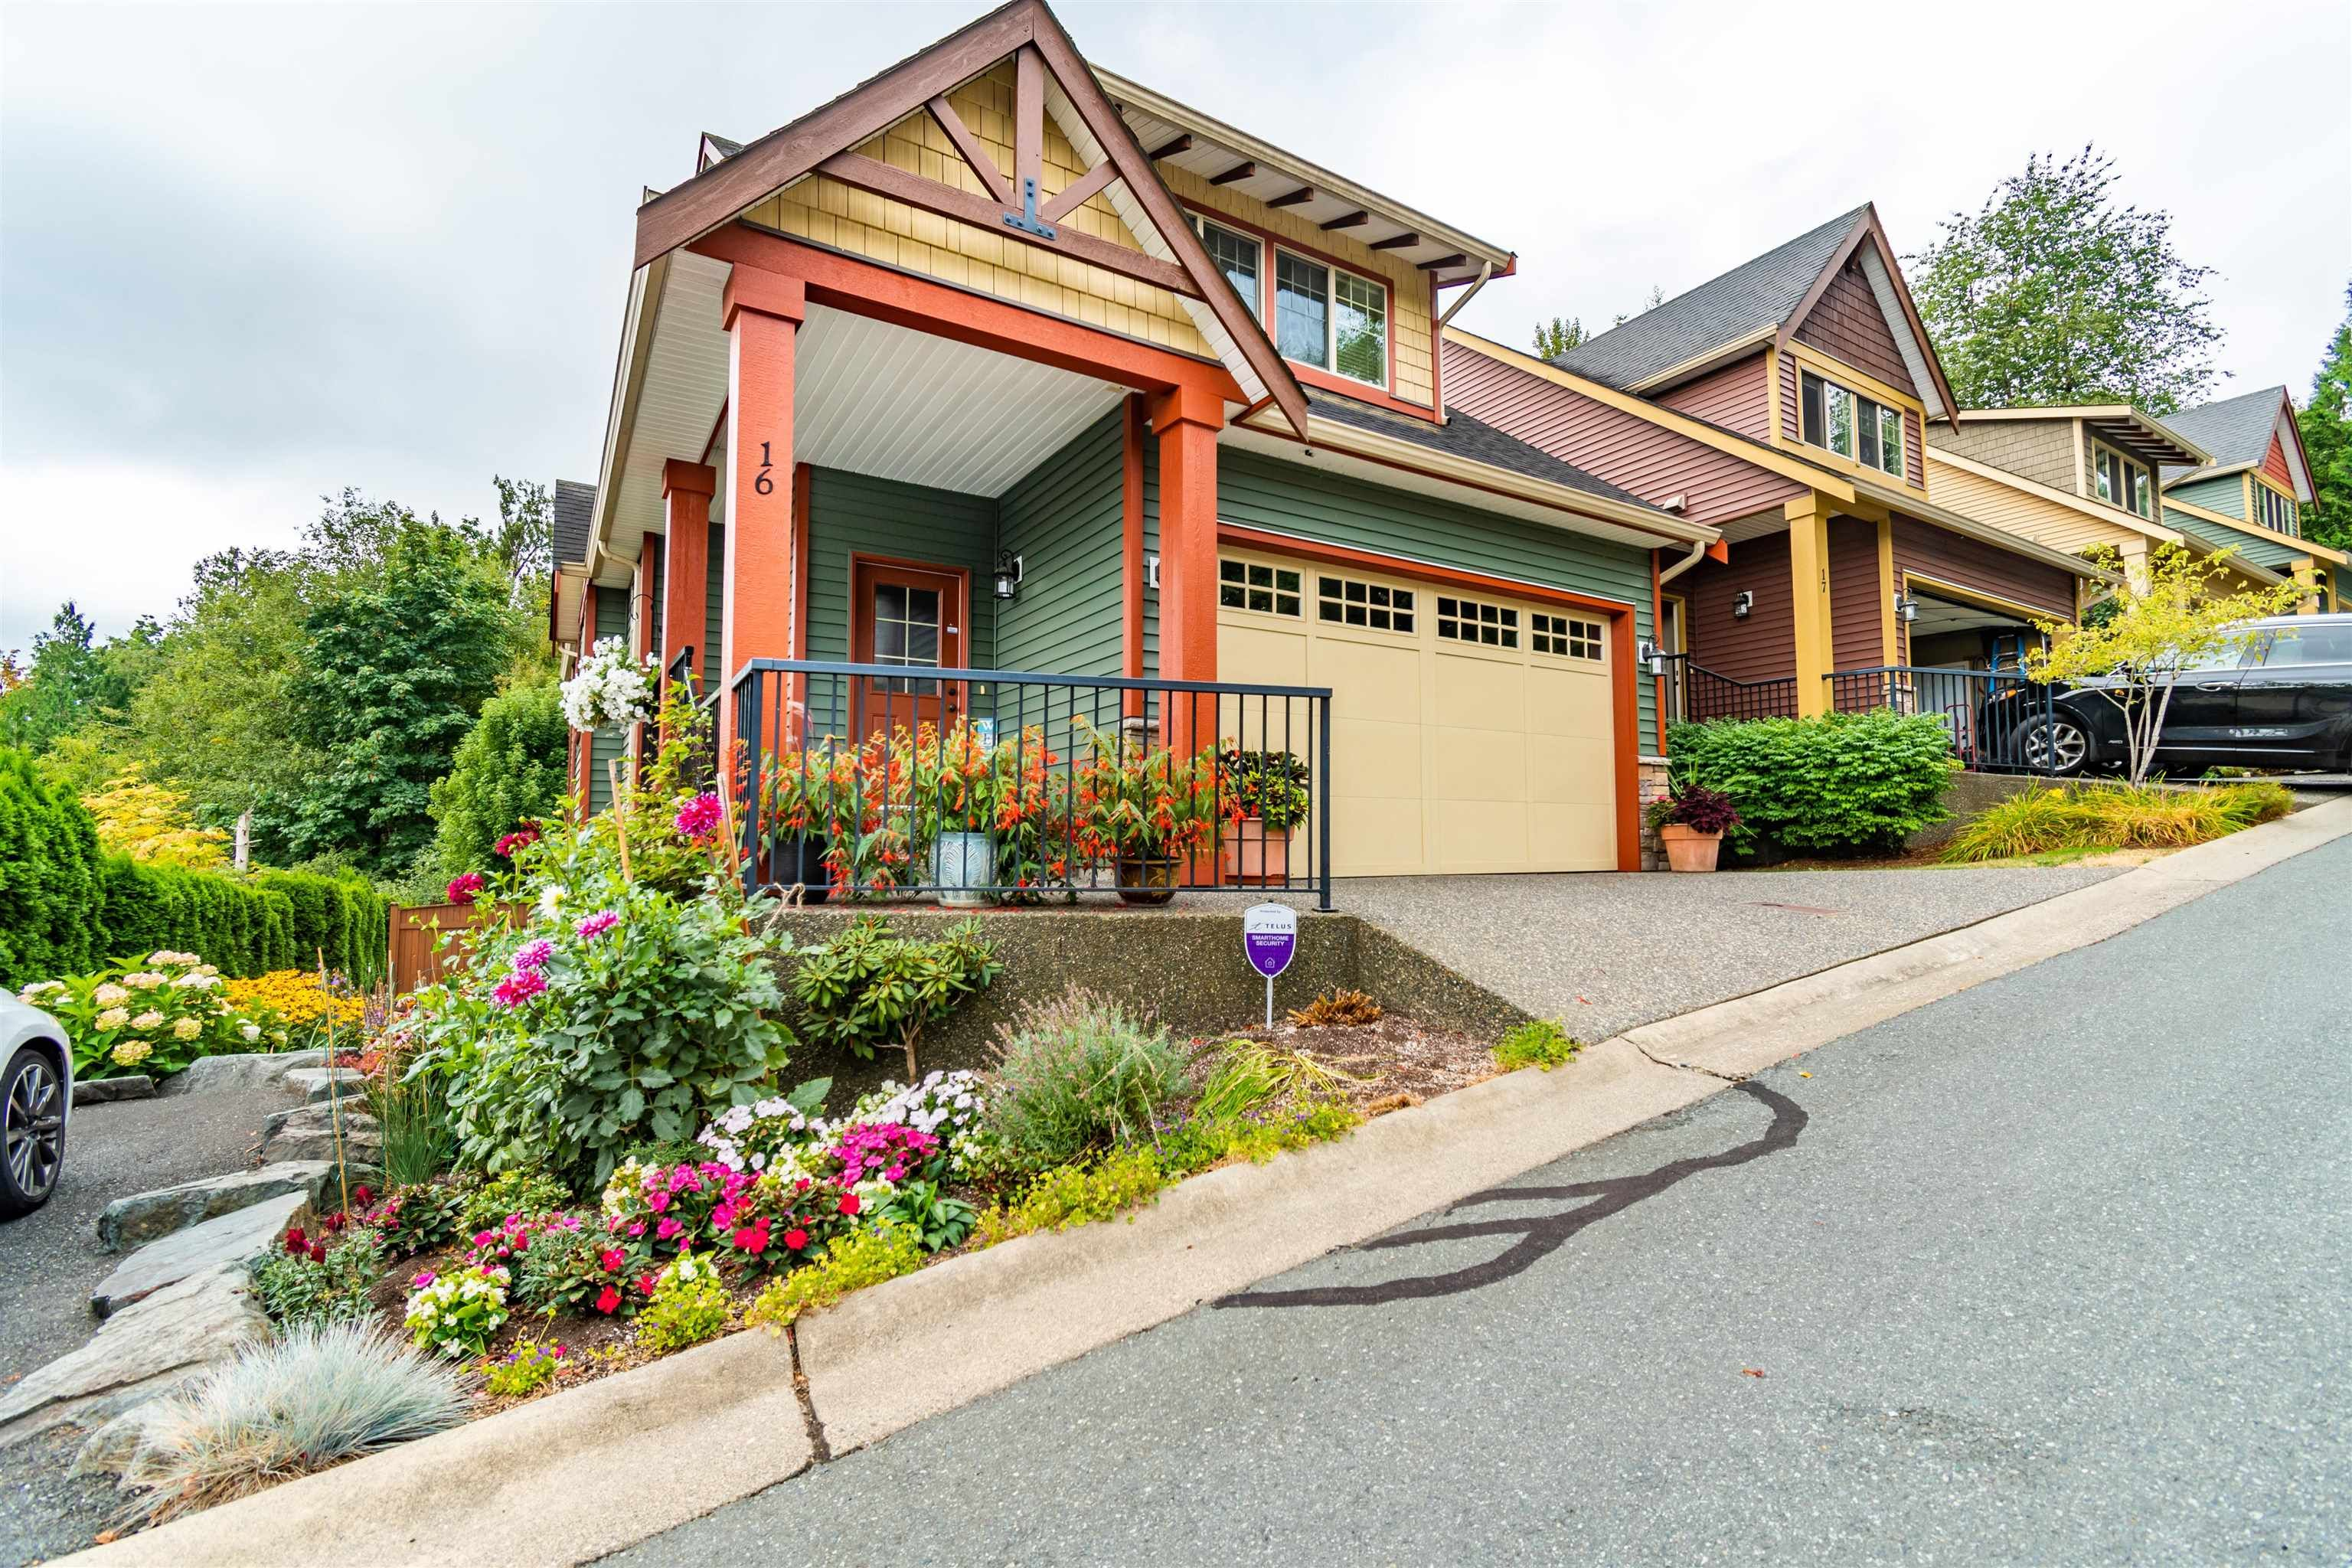 """Main Photo: 16 36169 LOWER SUMAS MOUNTAIN Road in Abbotsford: Abbotsford East Townhouse for sale in """"Junction Creek"""" : MLS®# R2610140"""